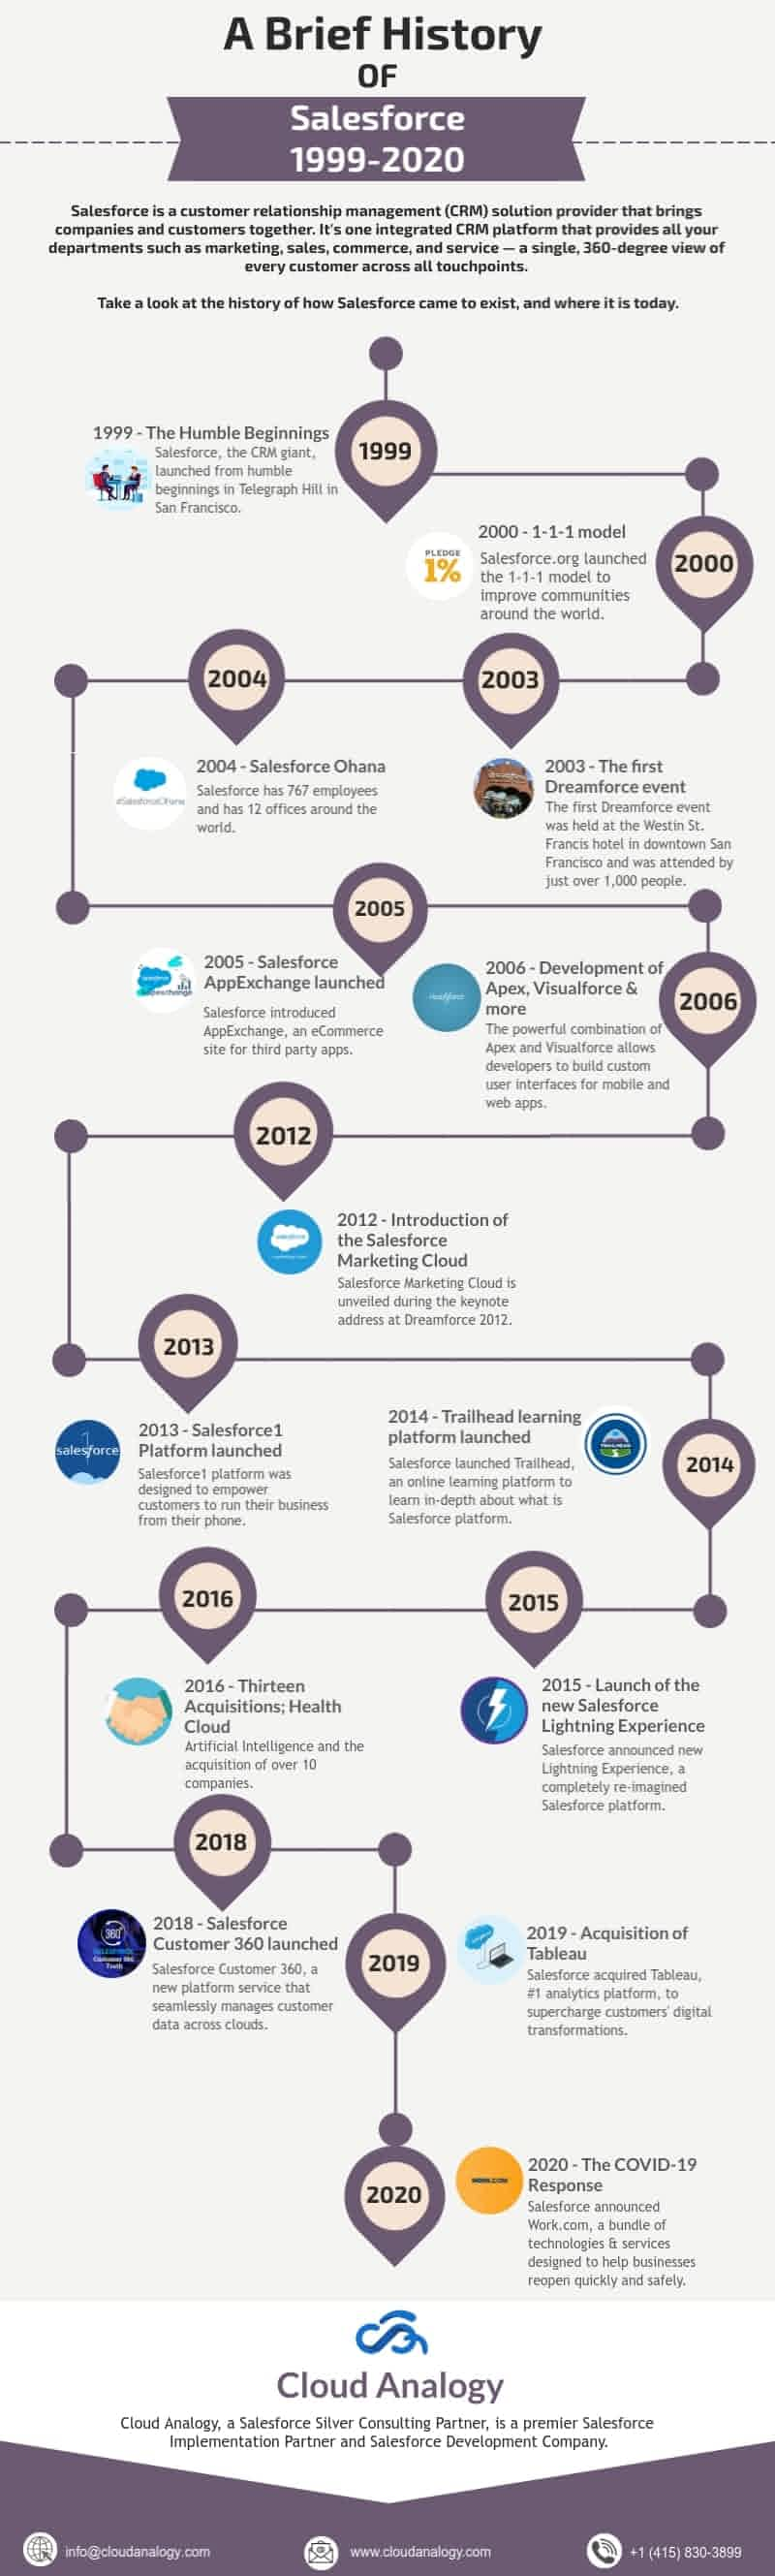 History of Salesforce: 1999-2020